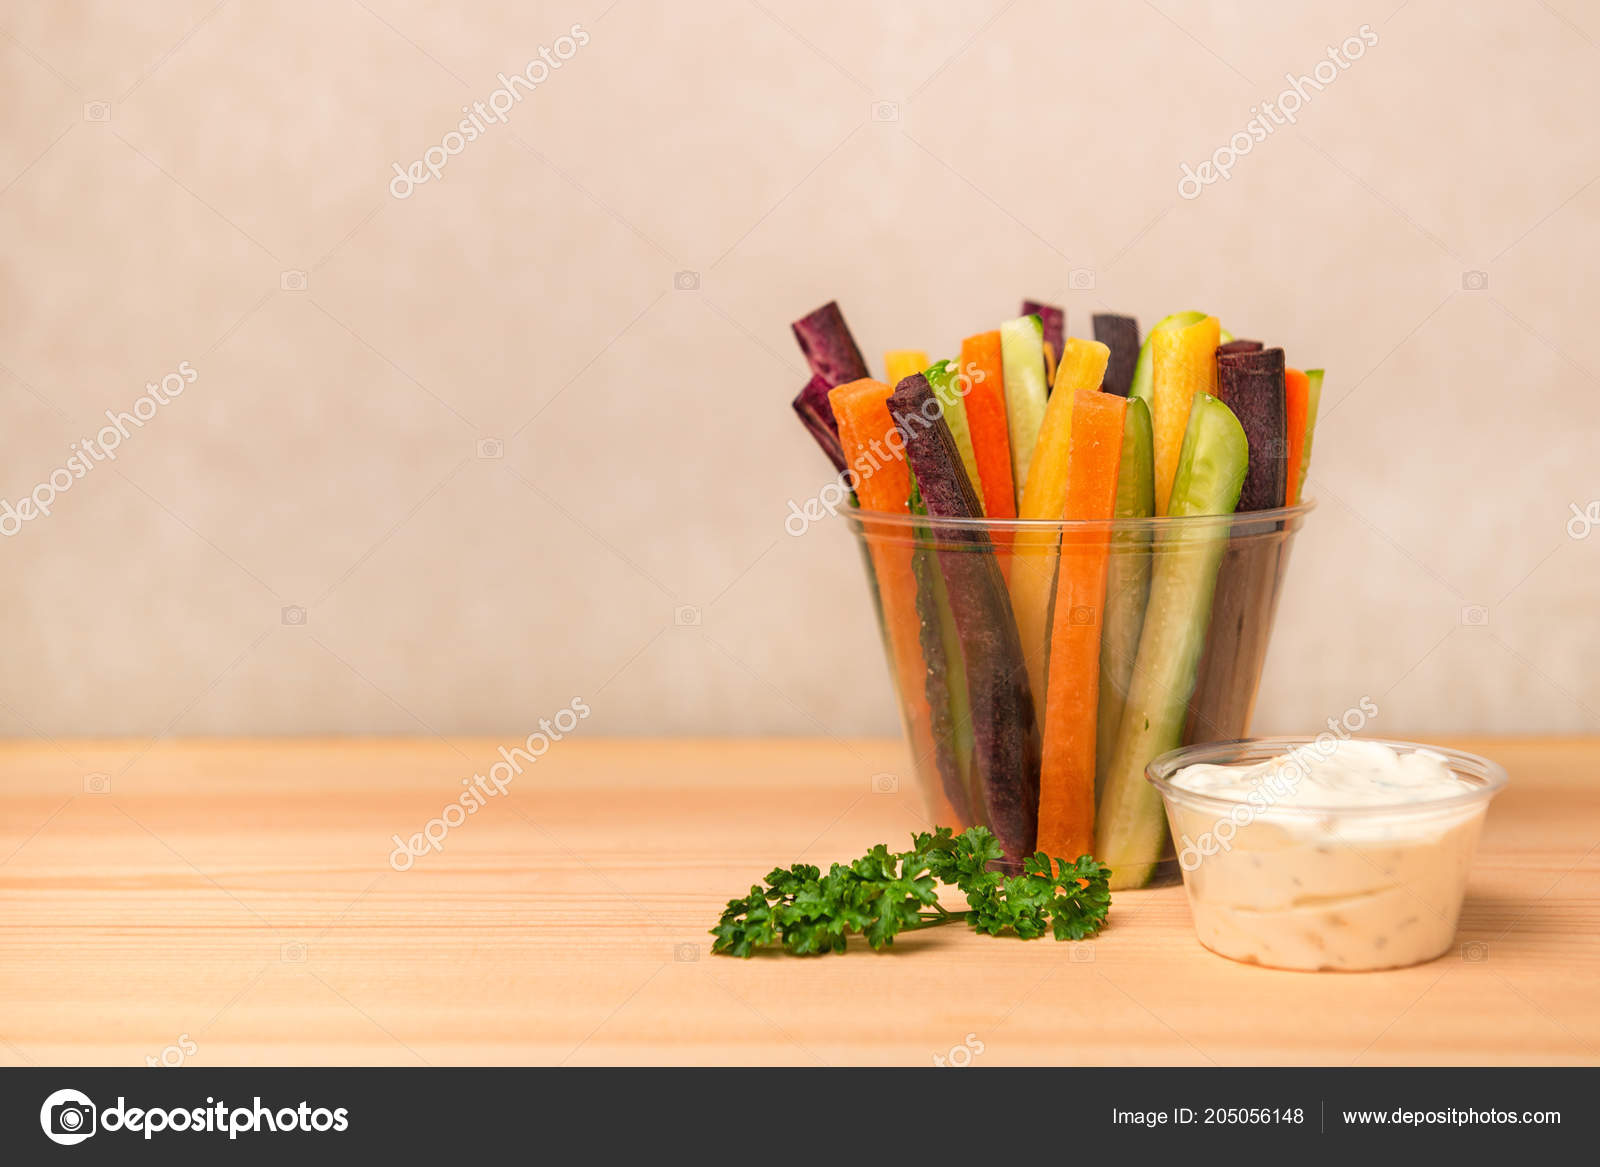 Colorful Carrots Cucumbers Vegetables Julienned Salad Sour Cream Dip